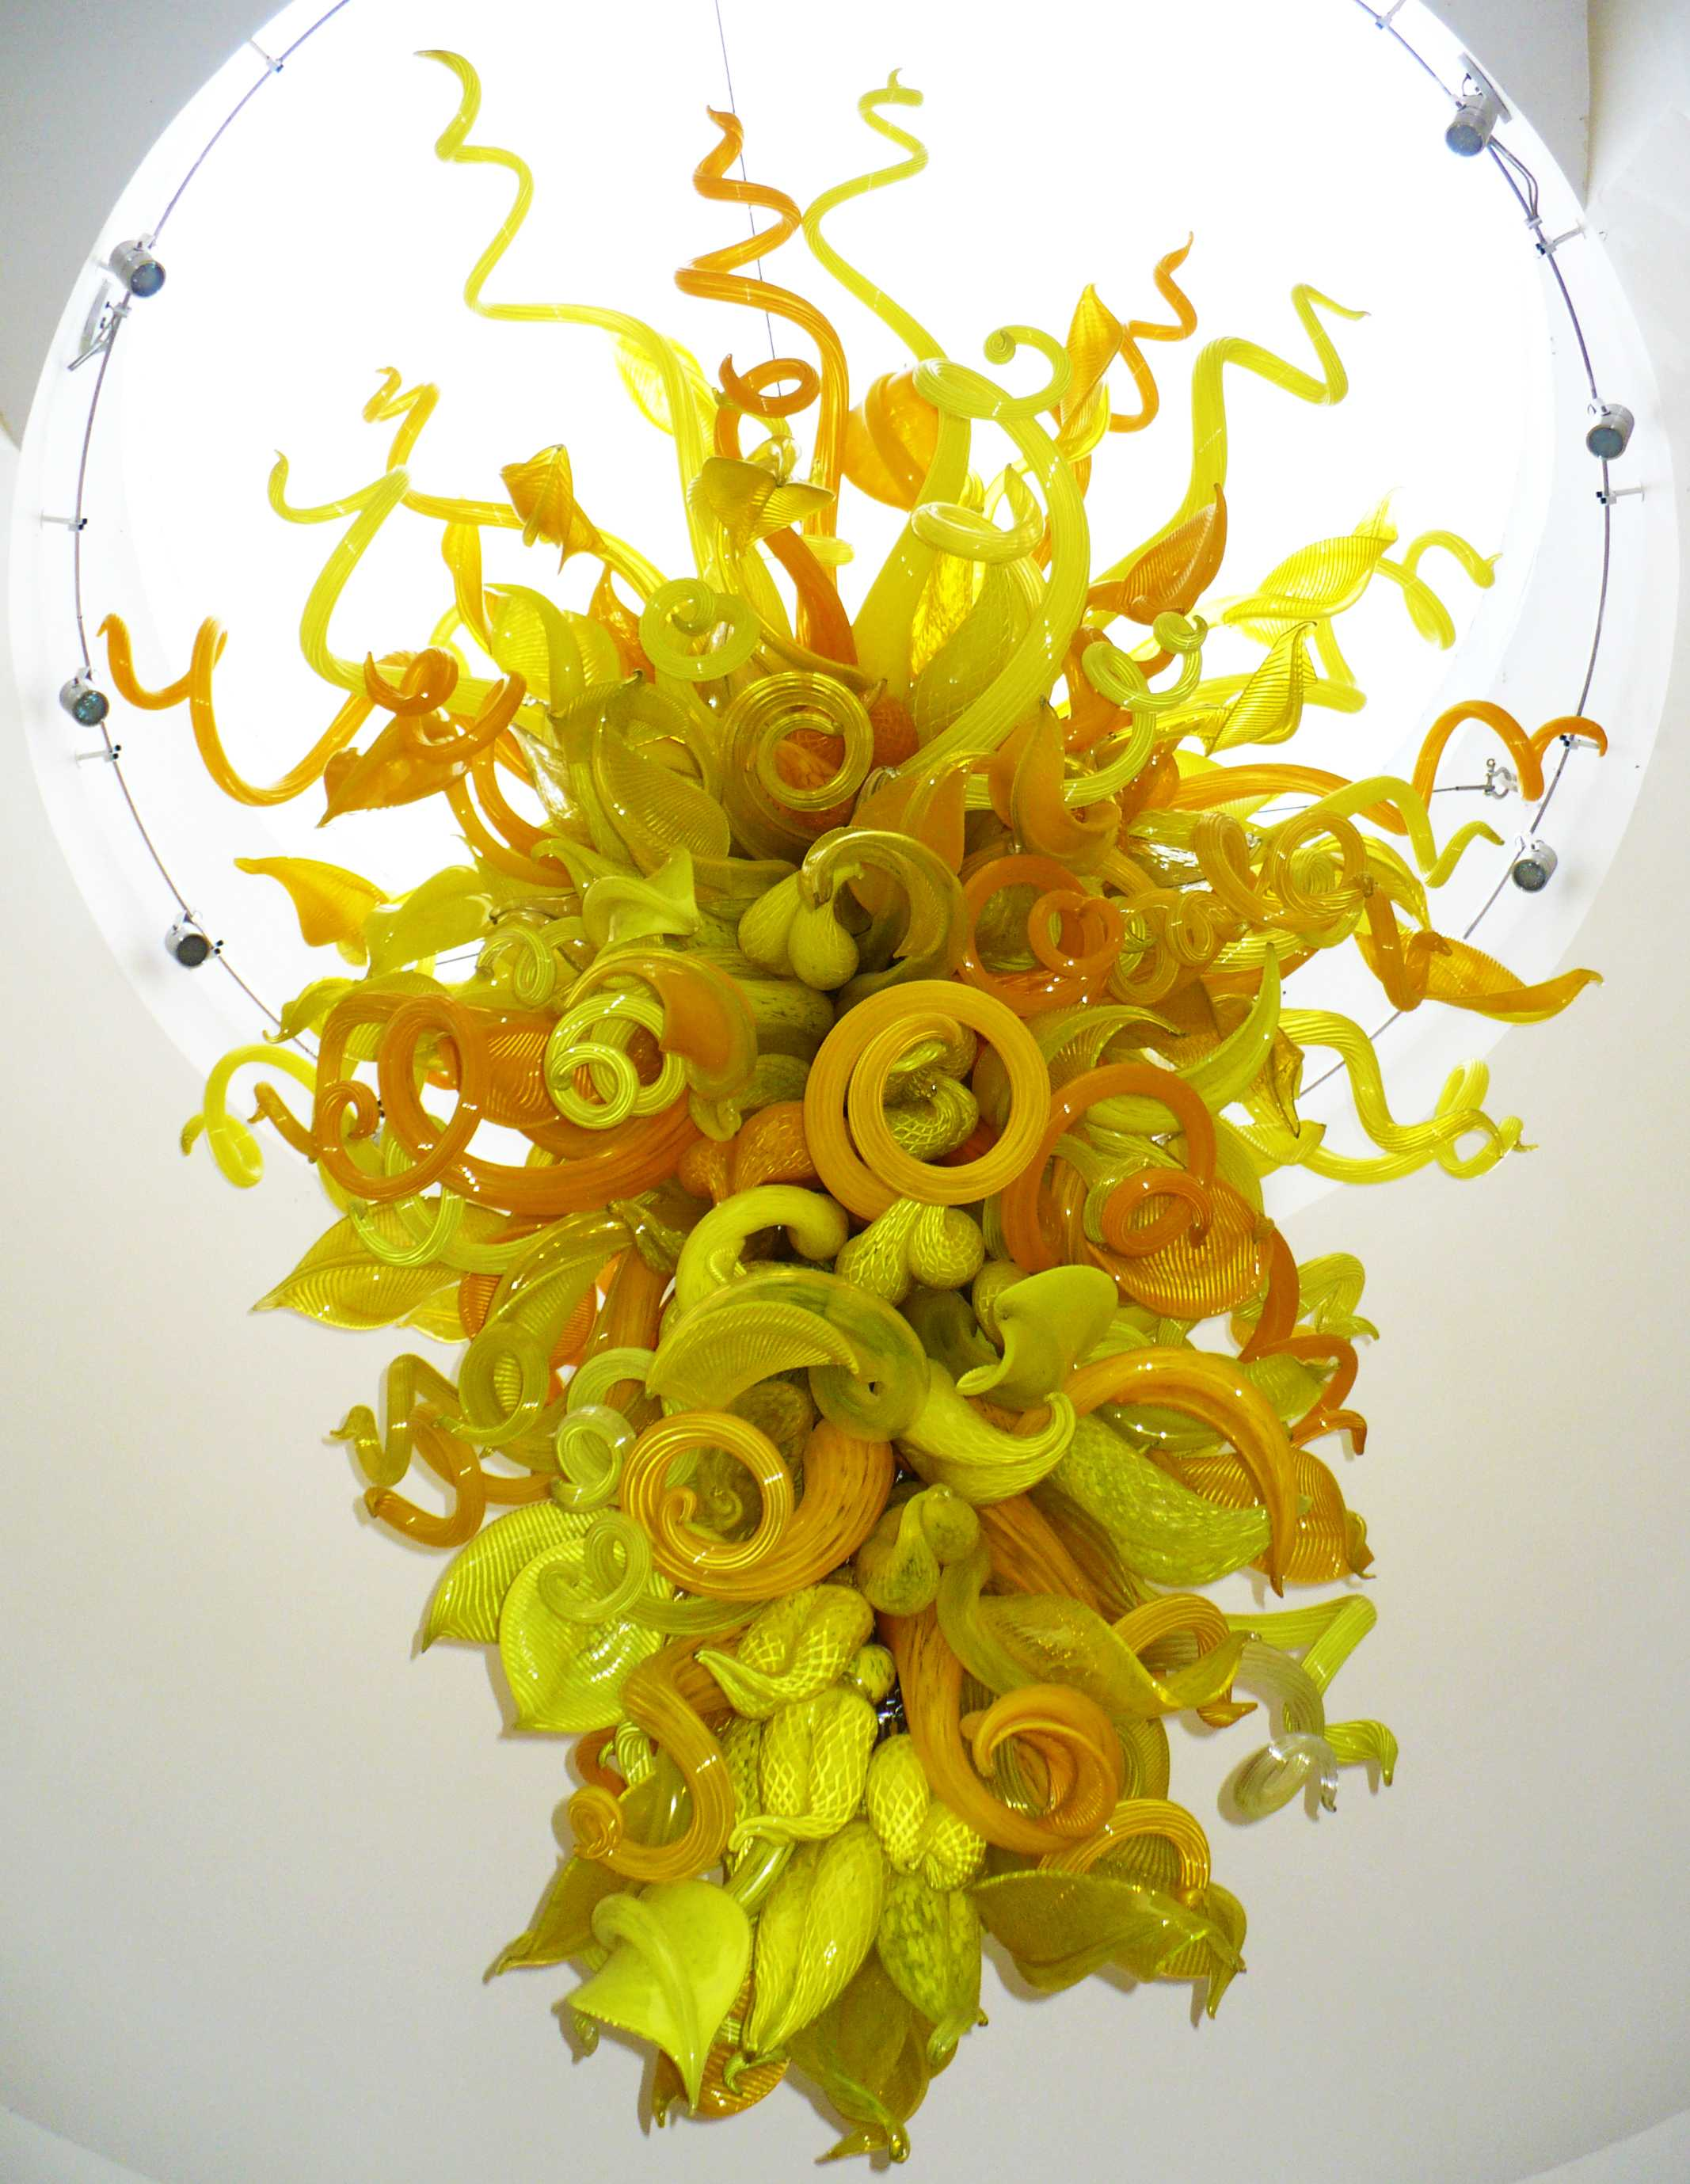 Chihuly - Beacon Gold Chandelier